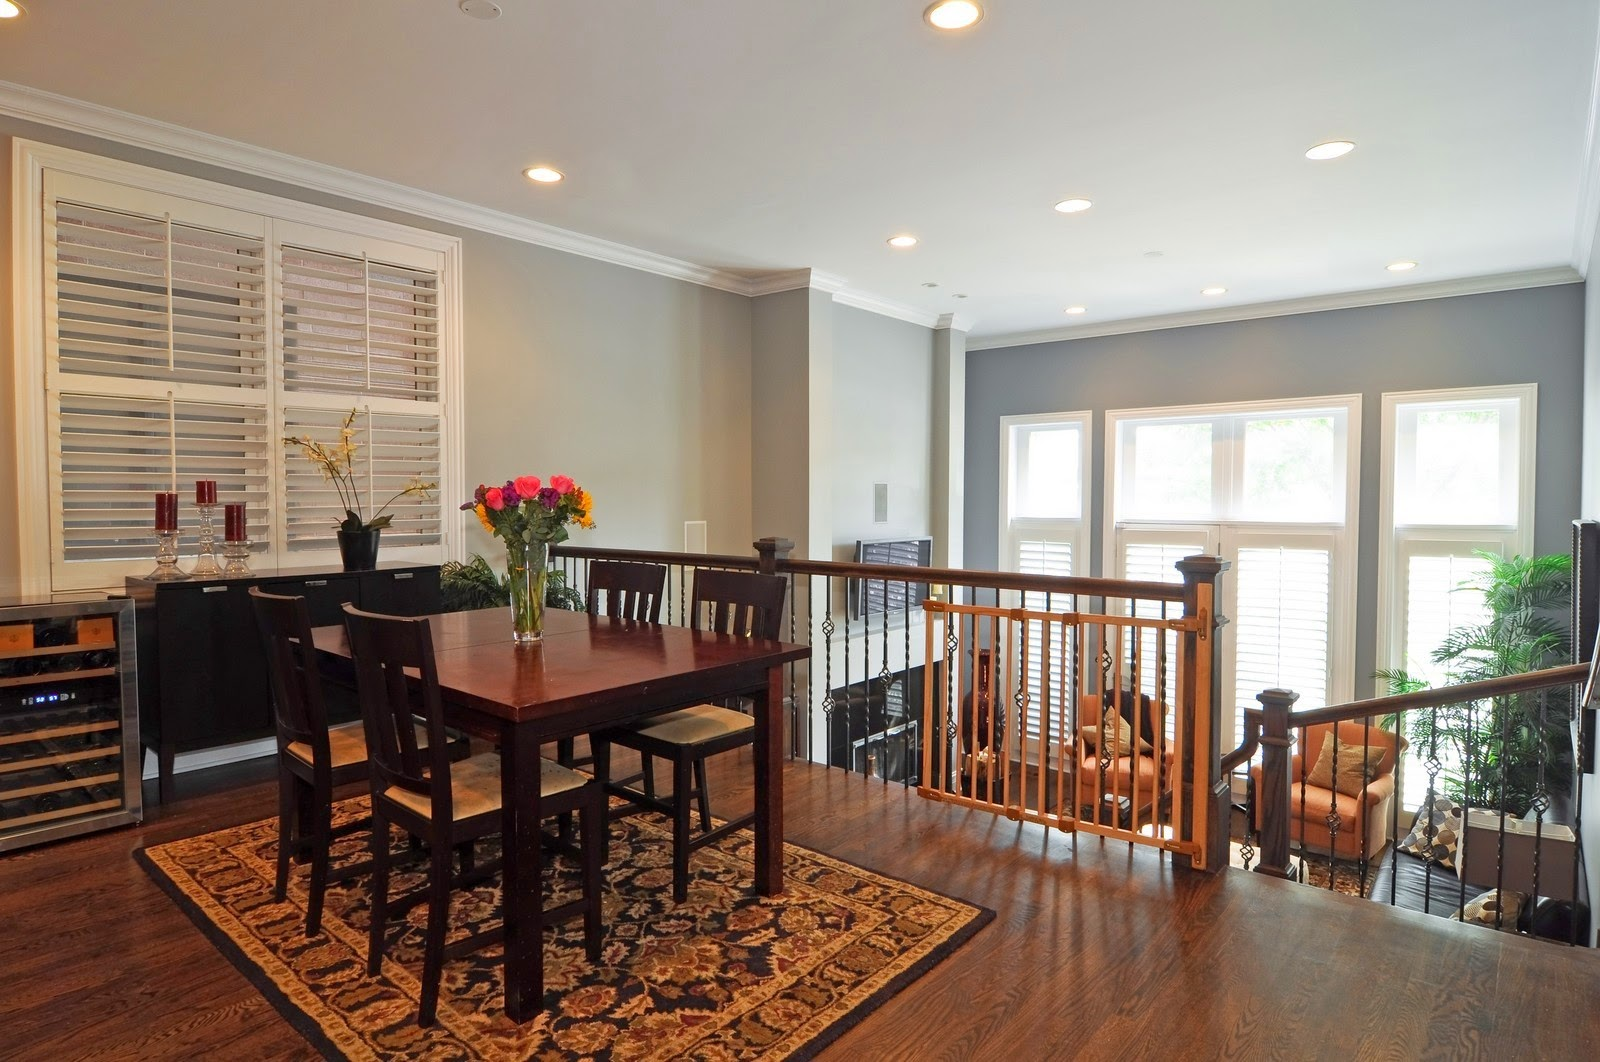 The best gray paint colors updated often home with keki for Gray paint color